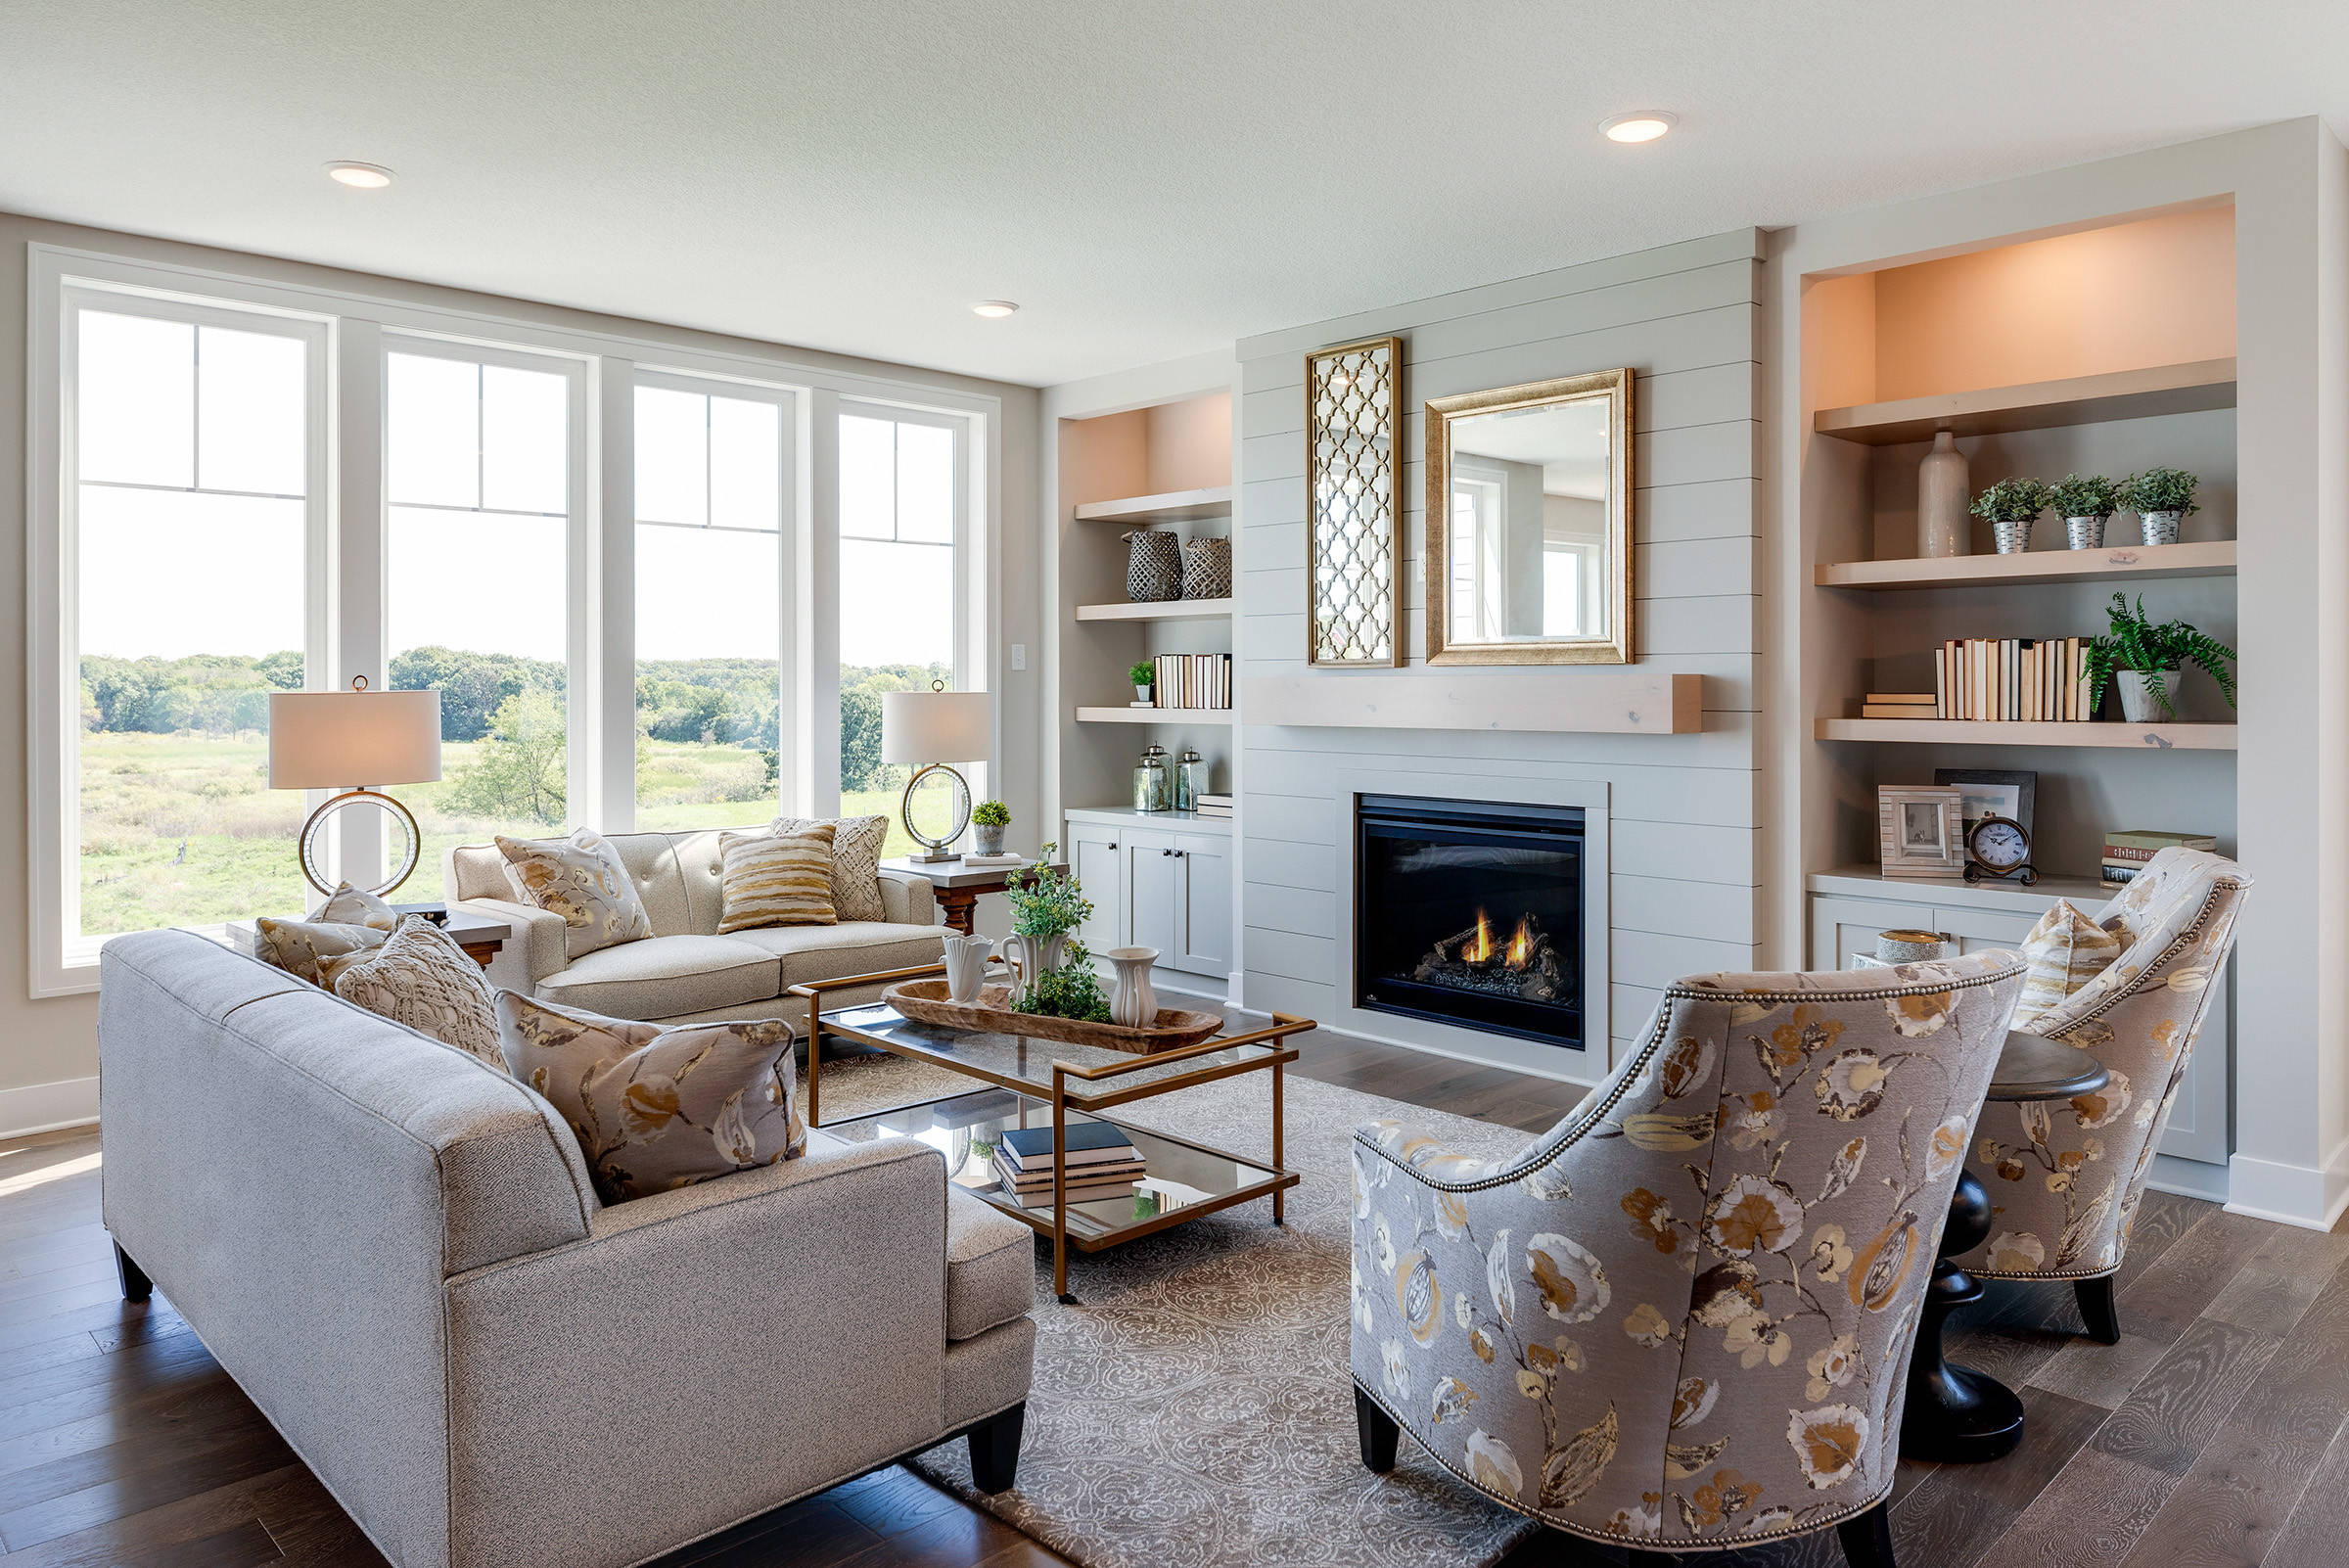 75 Beautiful Farmhouse Living Room With Gray Walls Pictures Ideas December 2020 Houzz